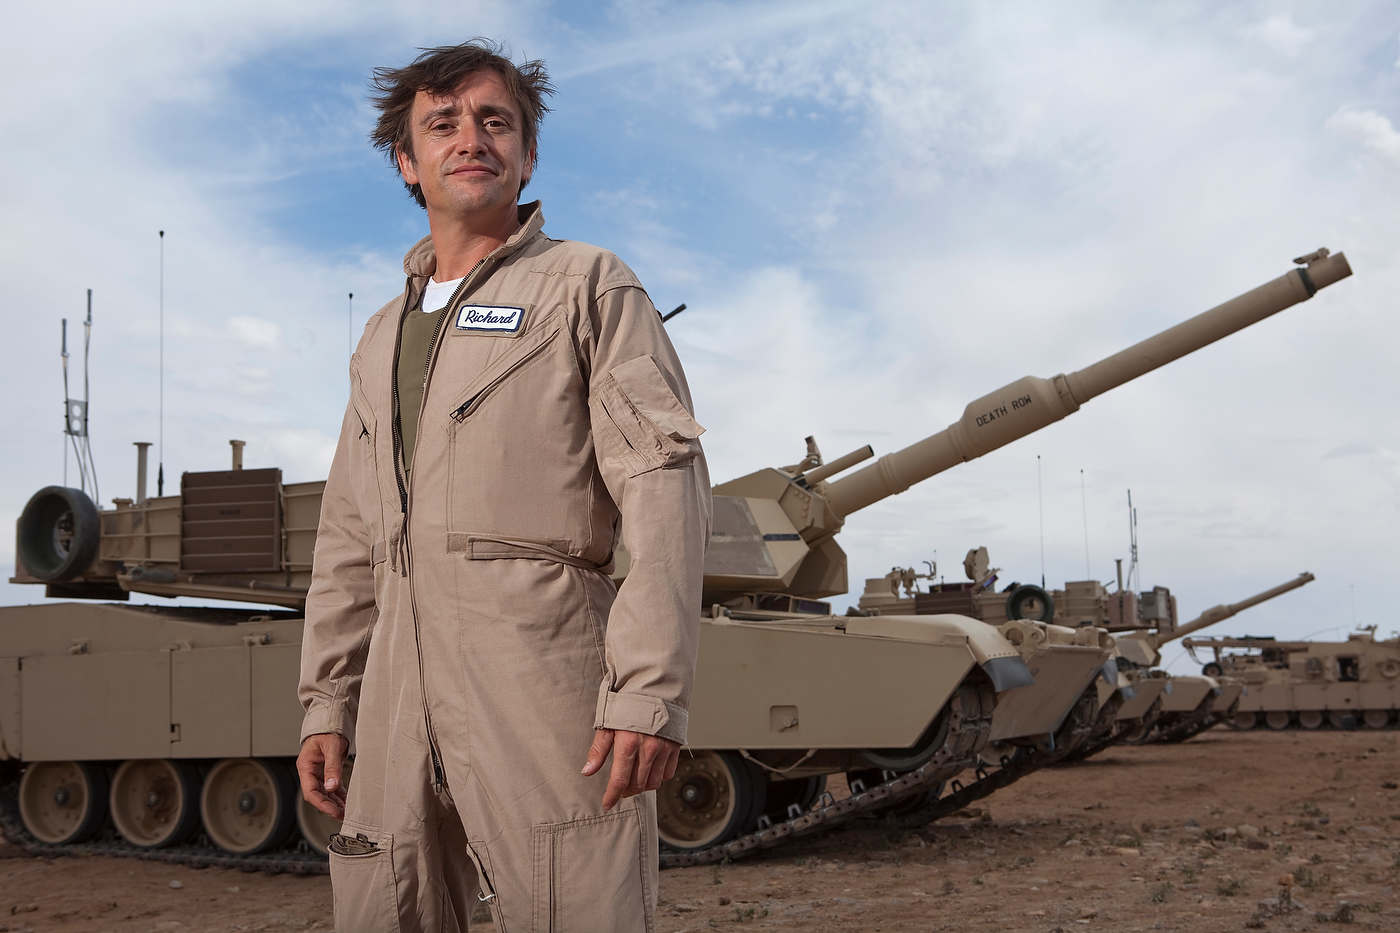 Richard Hammond, Texas, BBC Worldwide.